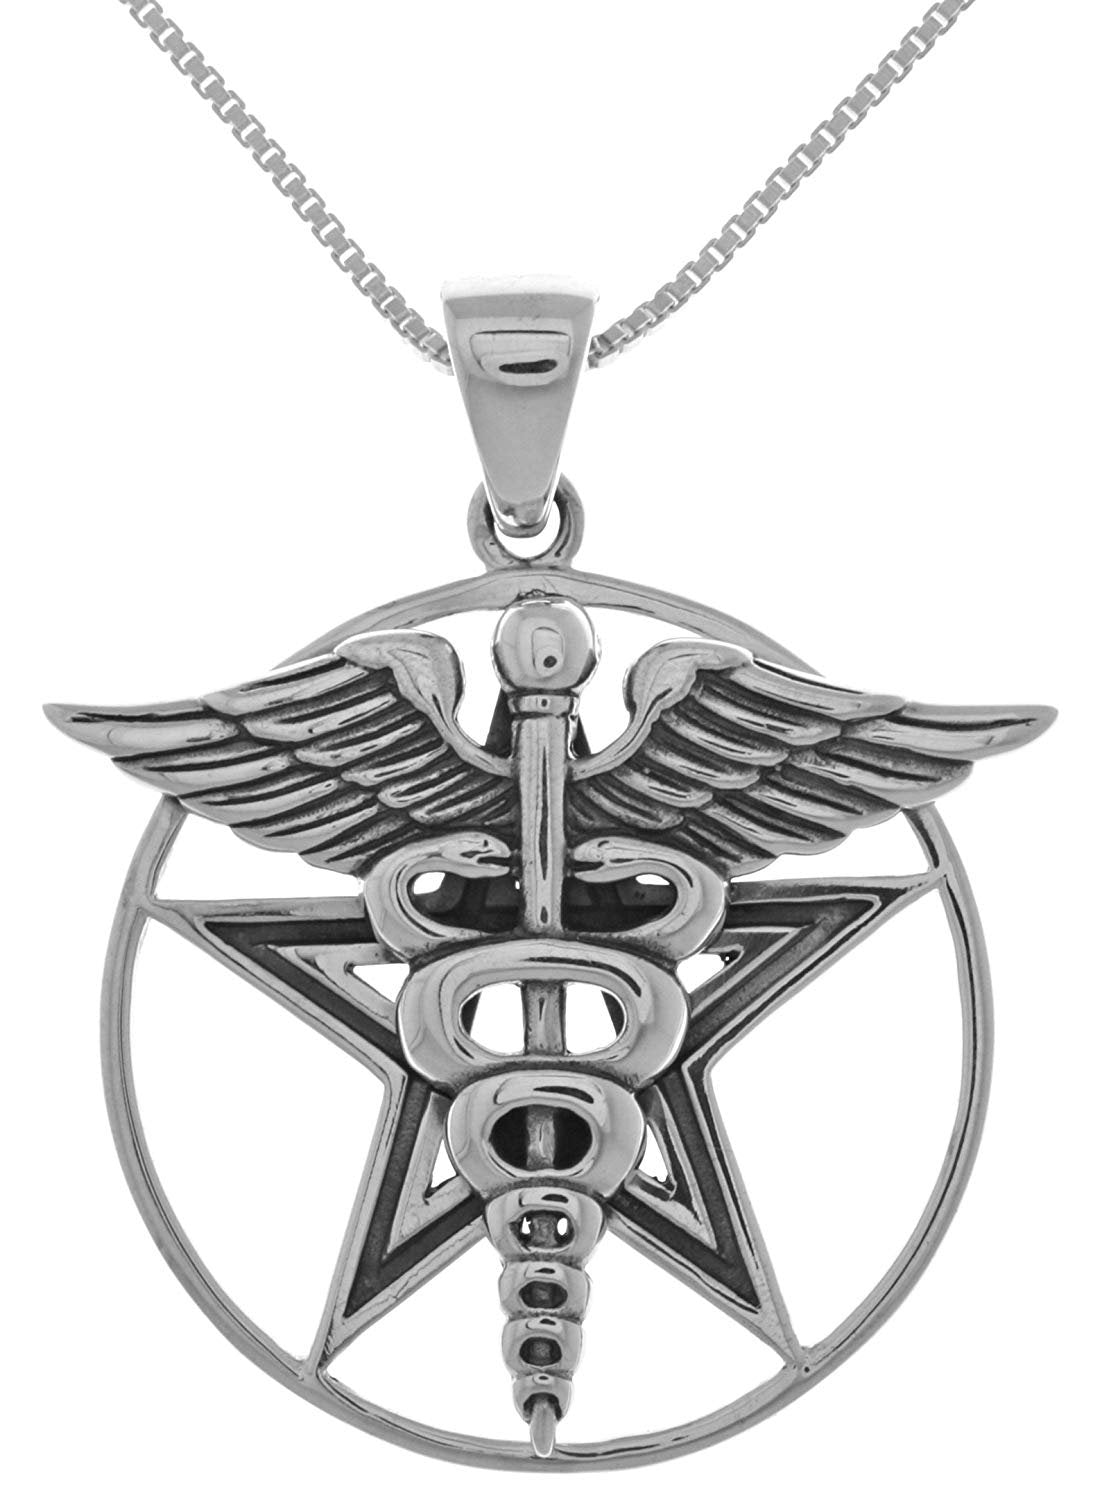 Jewelry Trends Caduceus Star Pentagram Pentacle Sterling Silver Pendant Necklace 18""